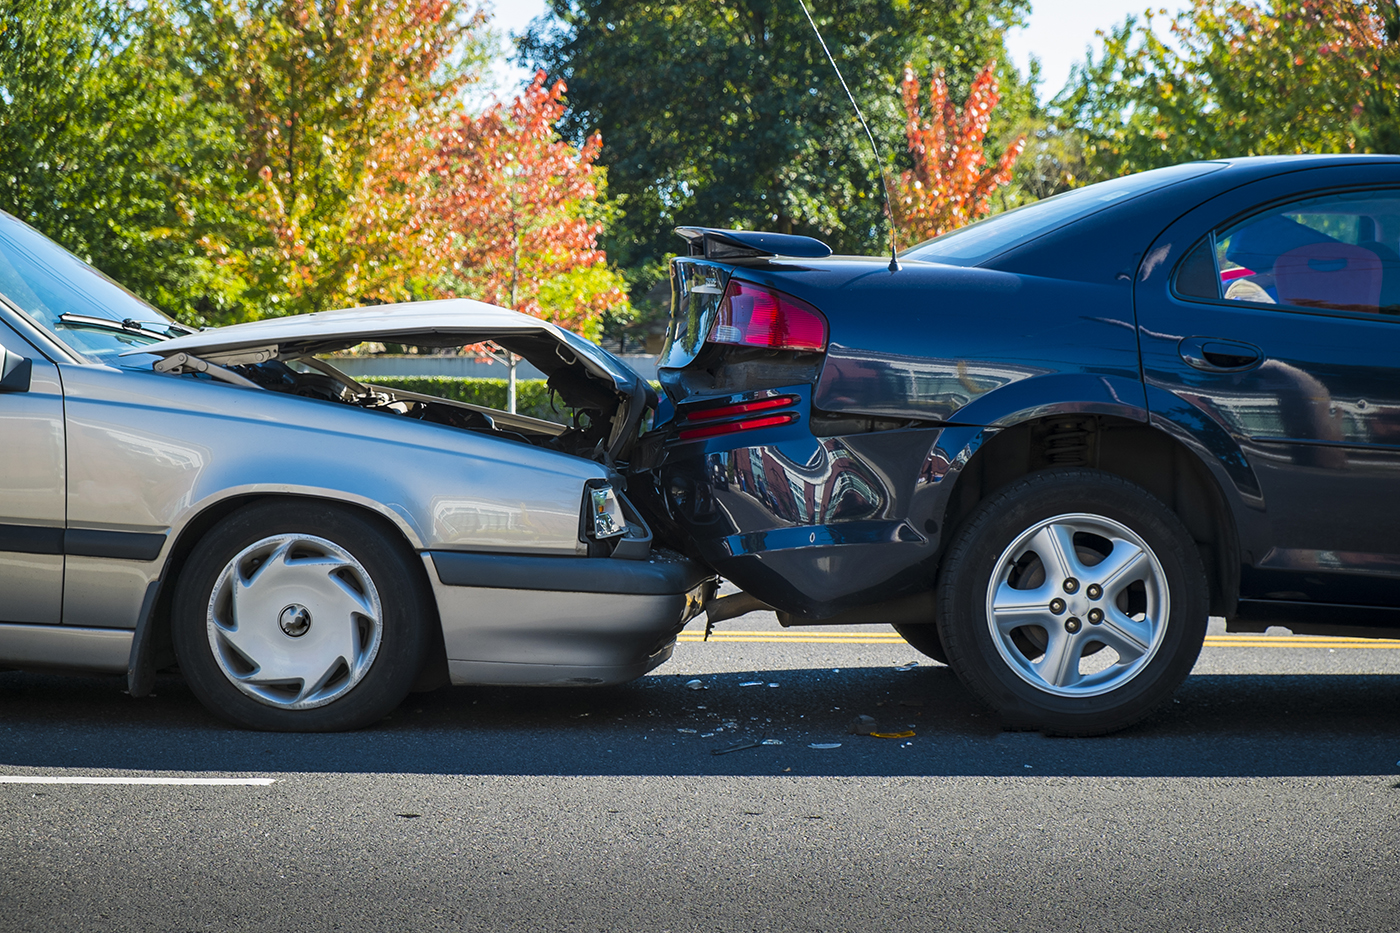 How do Insurance Companies Determine Fault After a Houston Car Accident? Featured Image